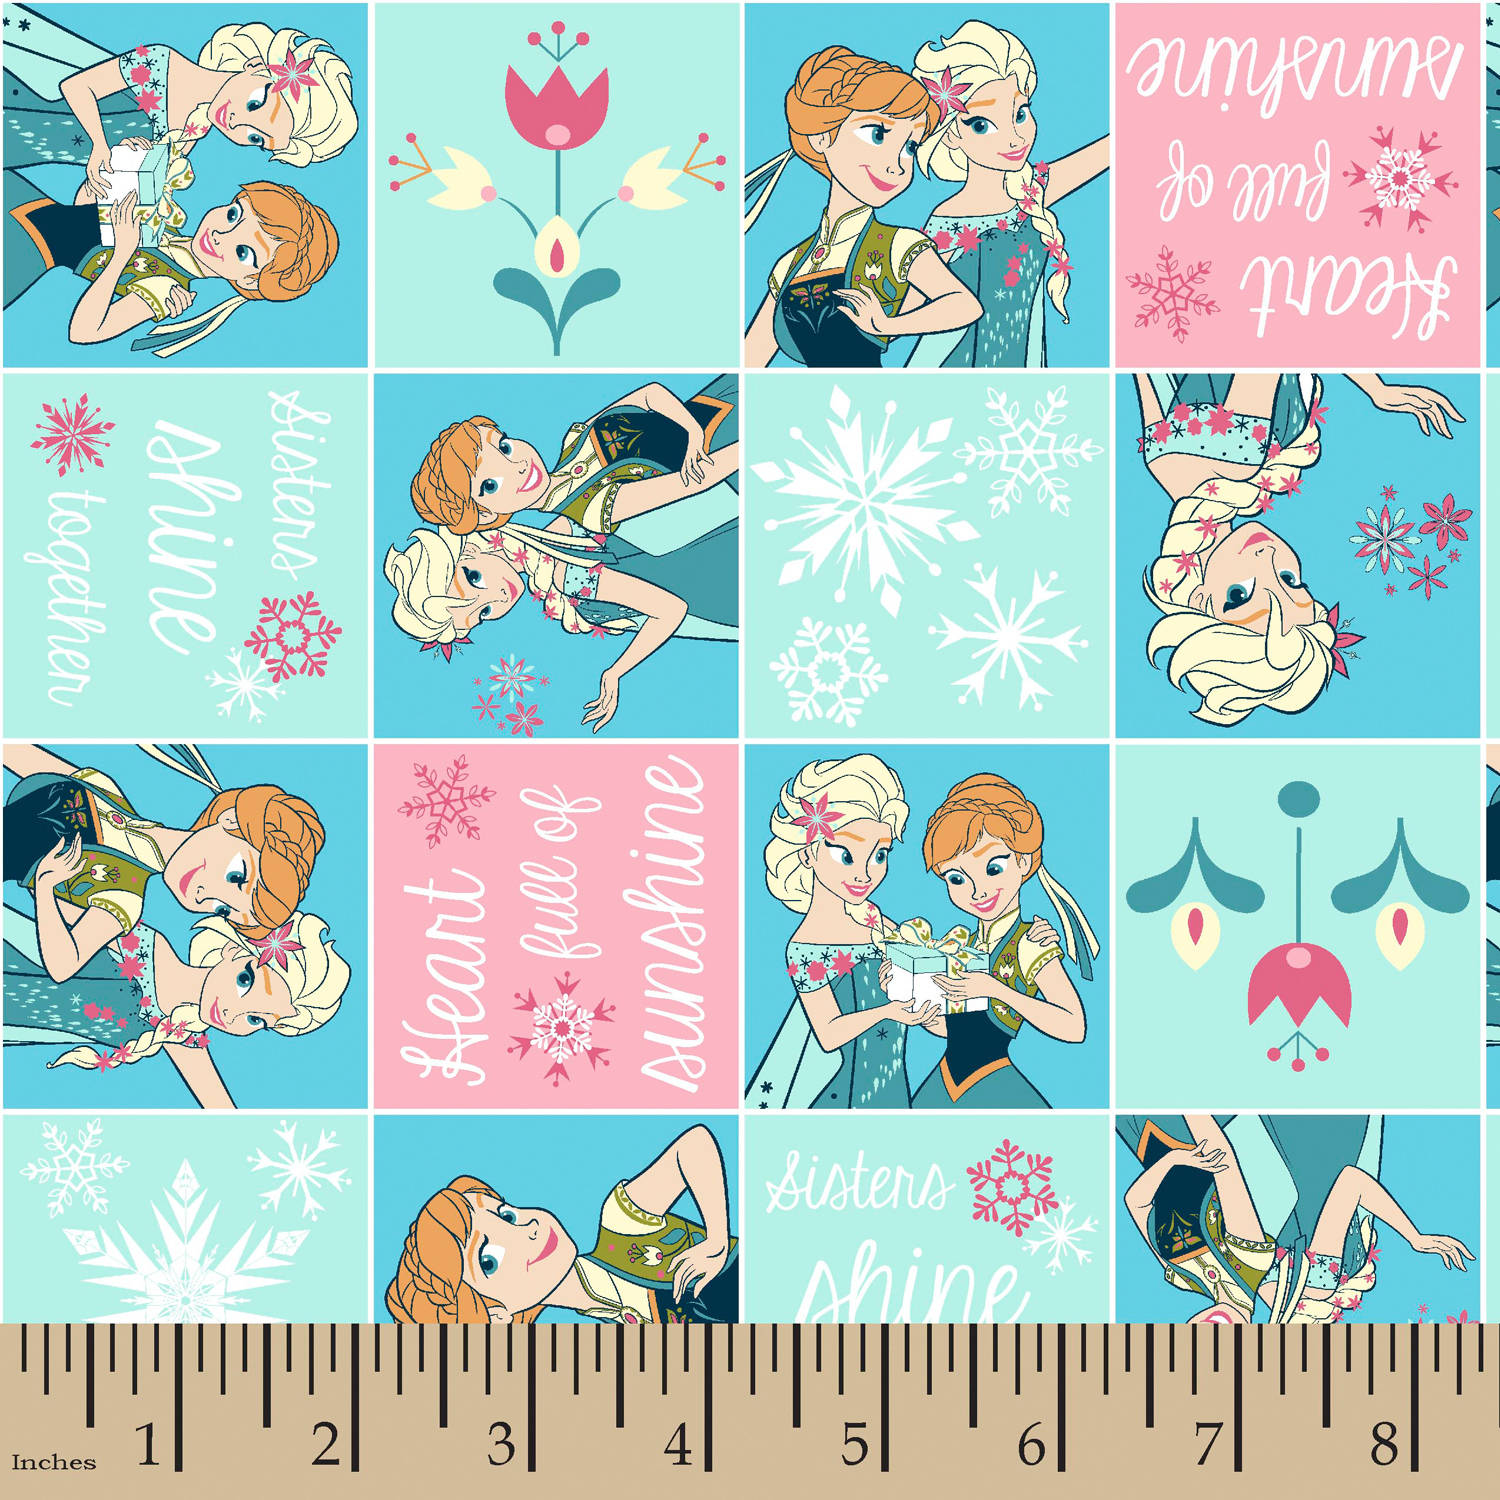 "Disney Sisters Frozen Fever Patch, Flannel, Light Aqua, 42/43"" Width, Fabric by the Yard"